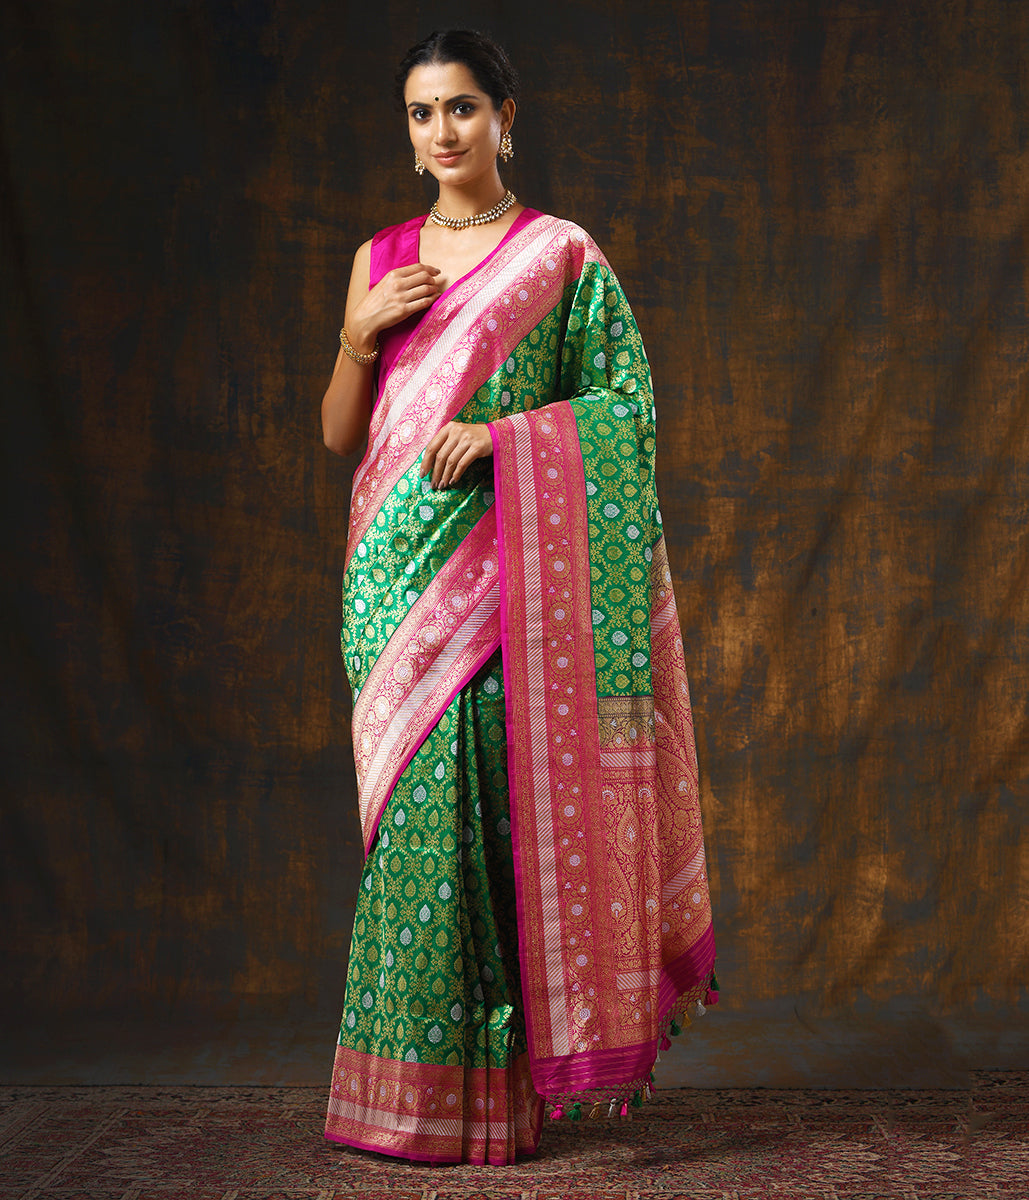 Handwoven Kadhwa Banarasi Jangla in Green with a Contrast Pink Border